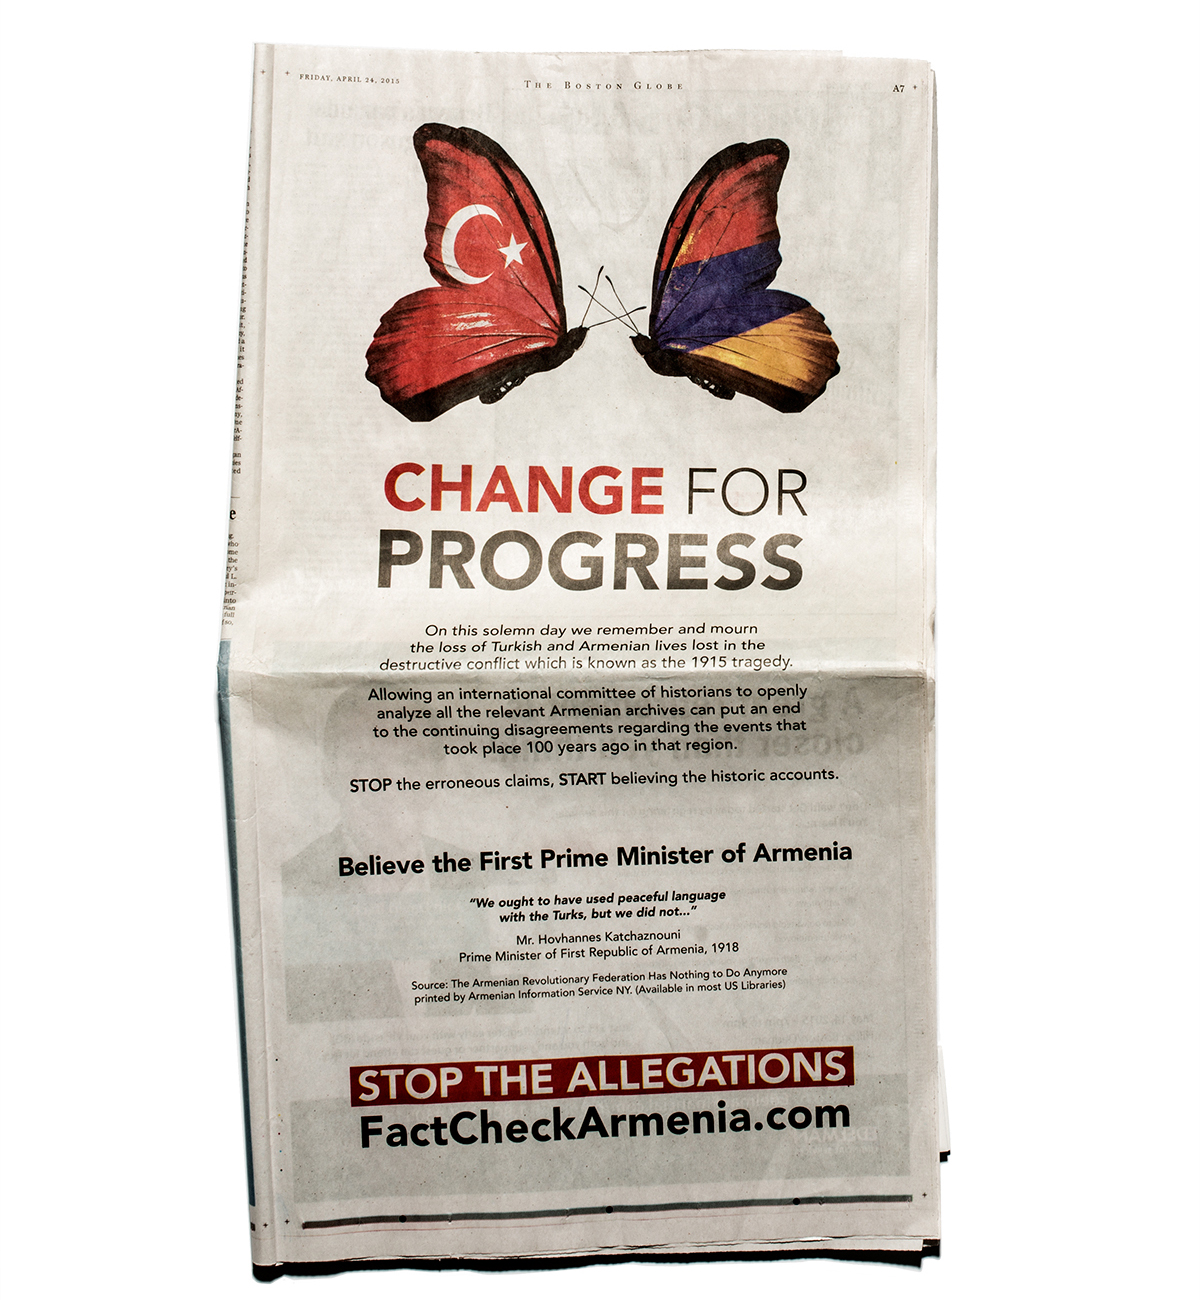 Photo of the ad in the Boston Globe by Mariel Tenney